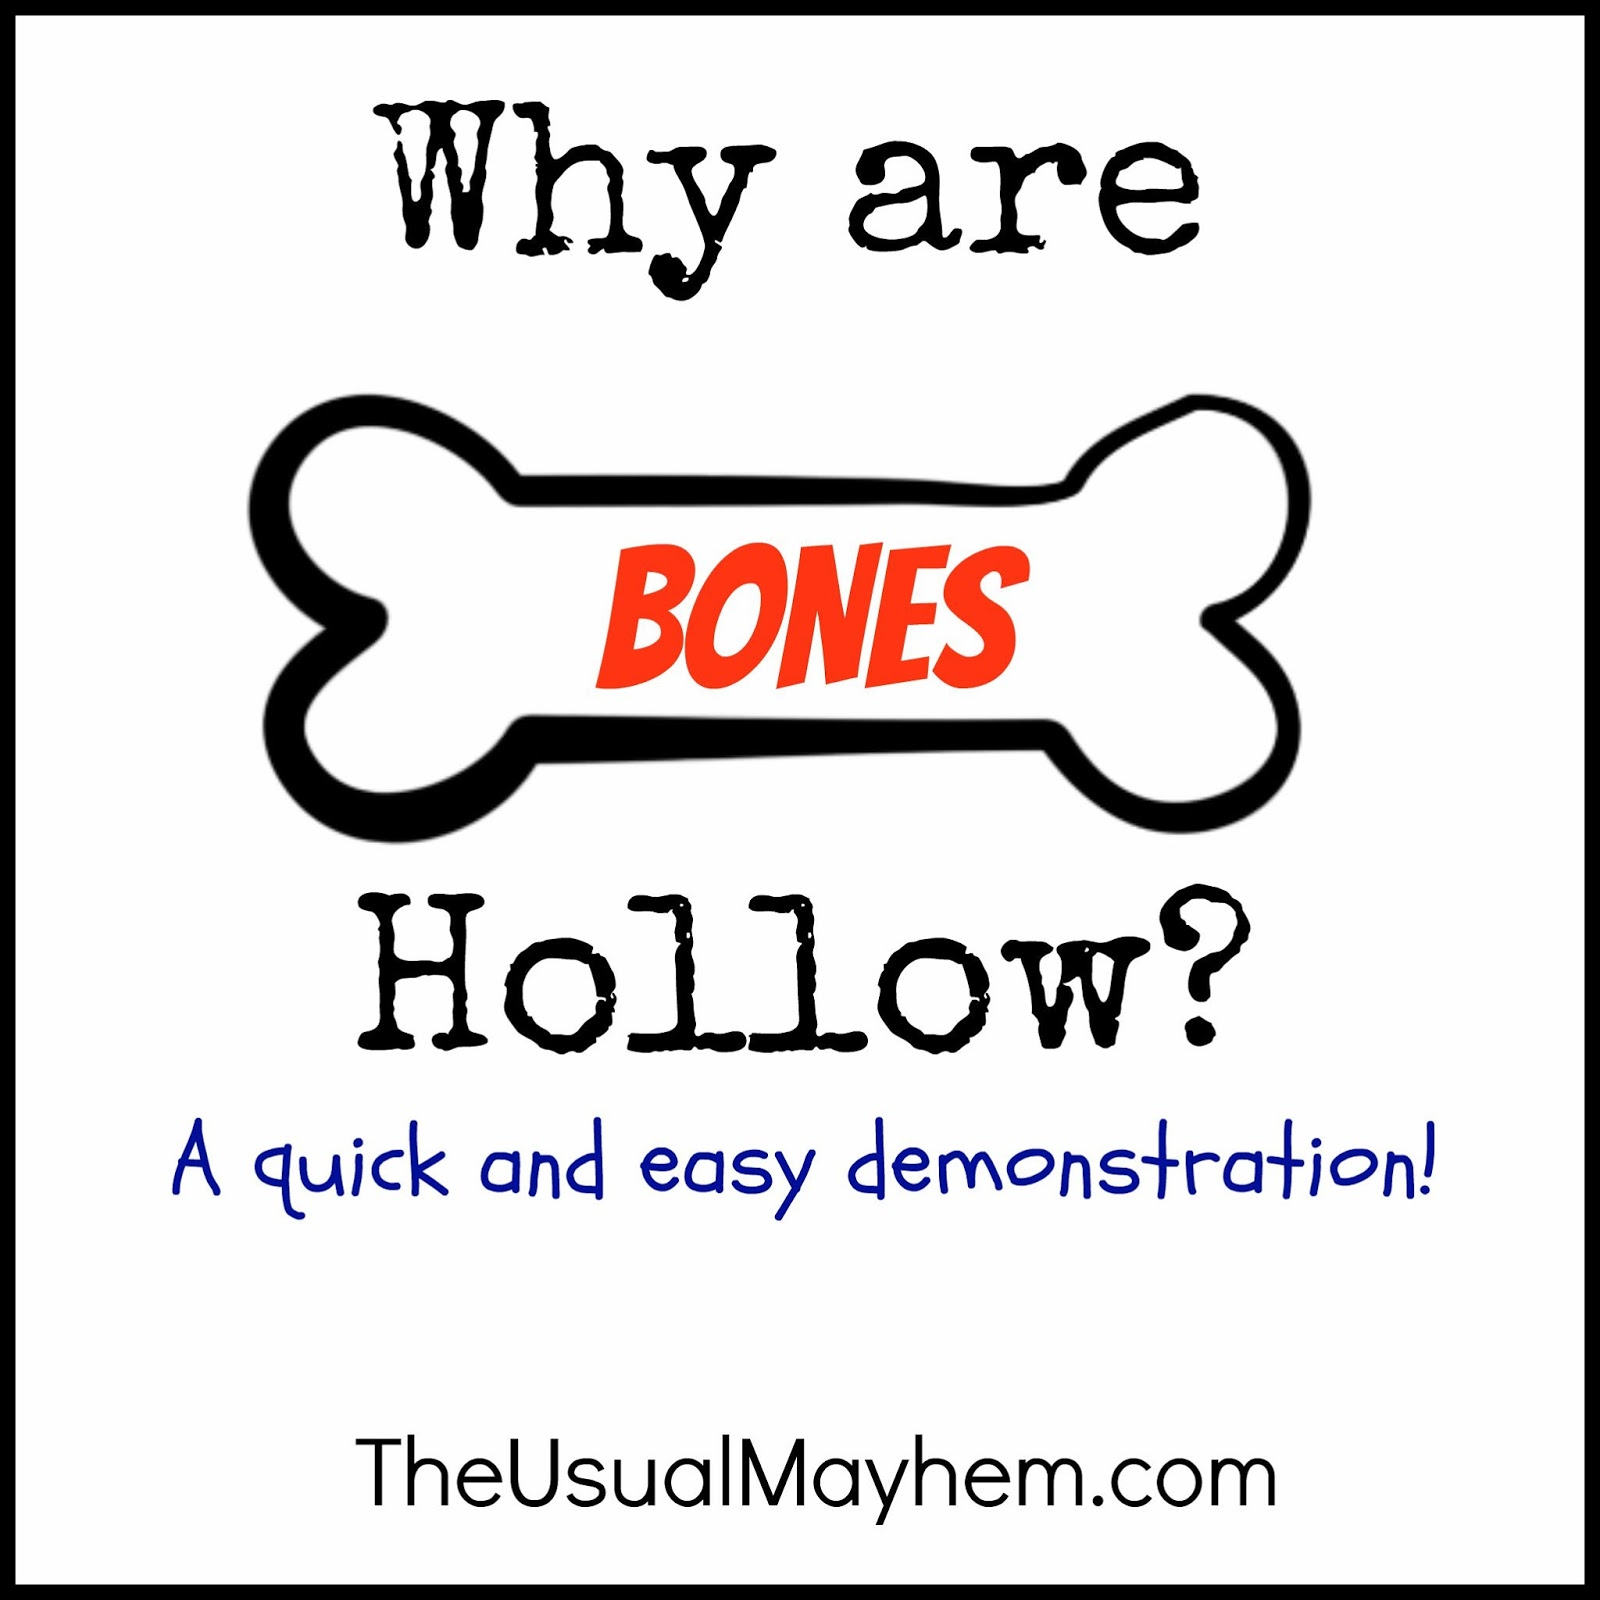 Why are bones hollow click for details bones why did they kill sweets